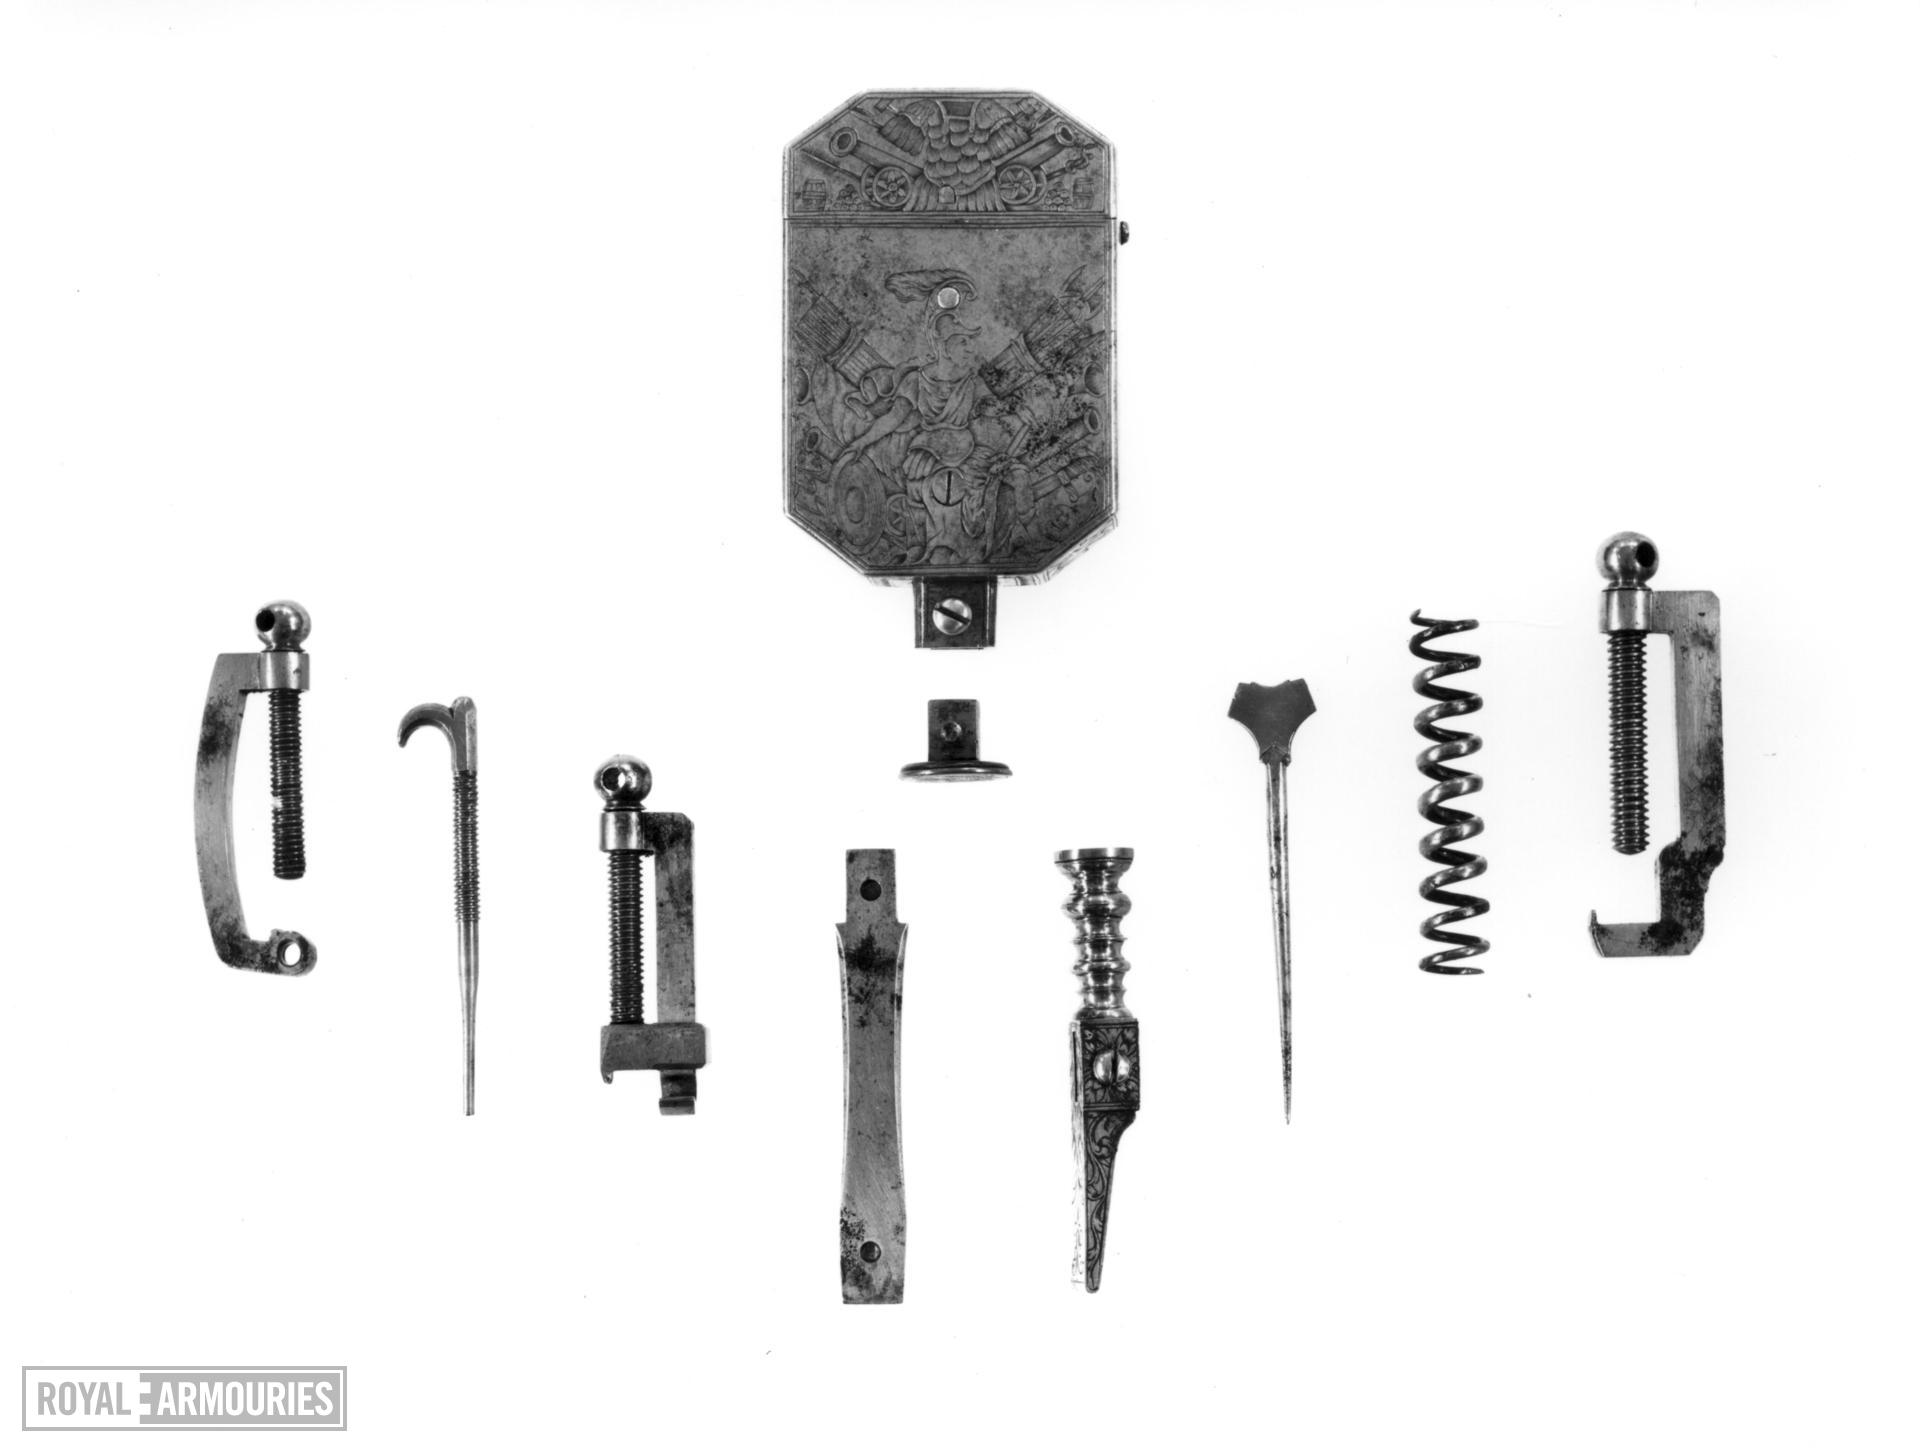 Pocket set of gunmakers tools By Andrew Dolep For the Grand Duke of Tuscany